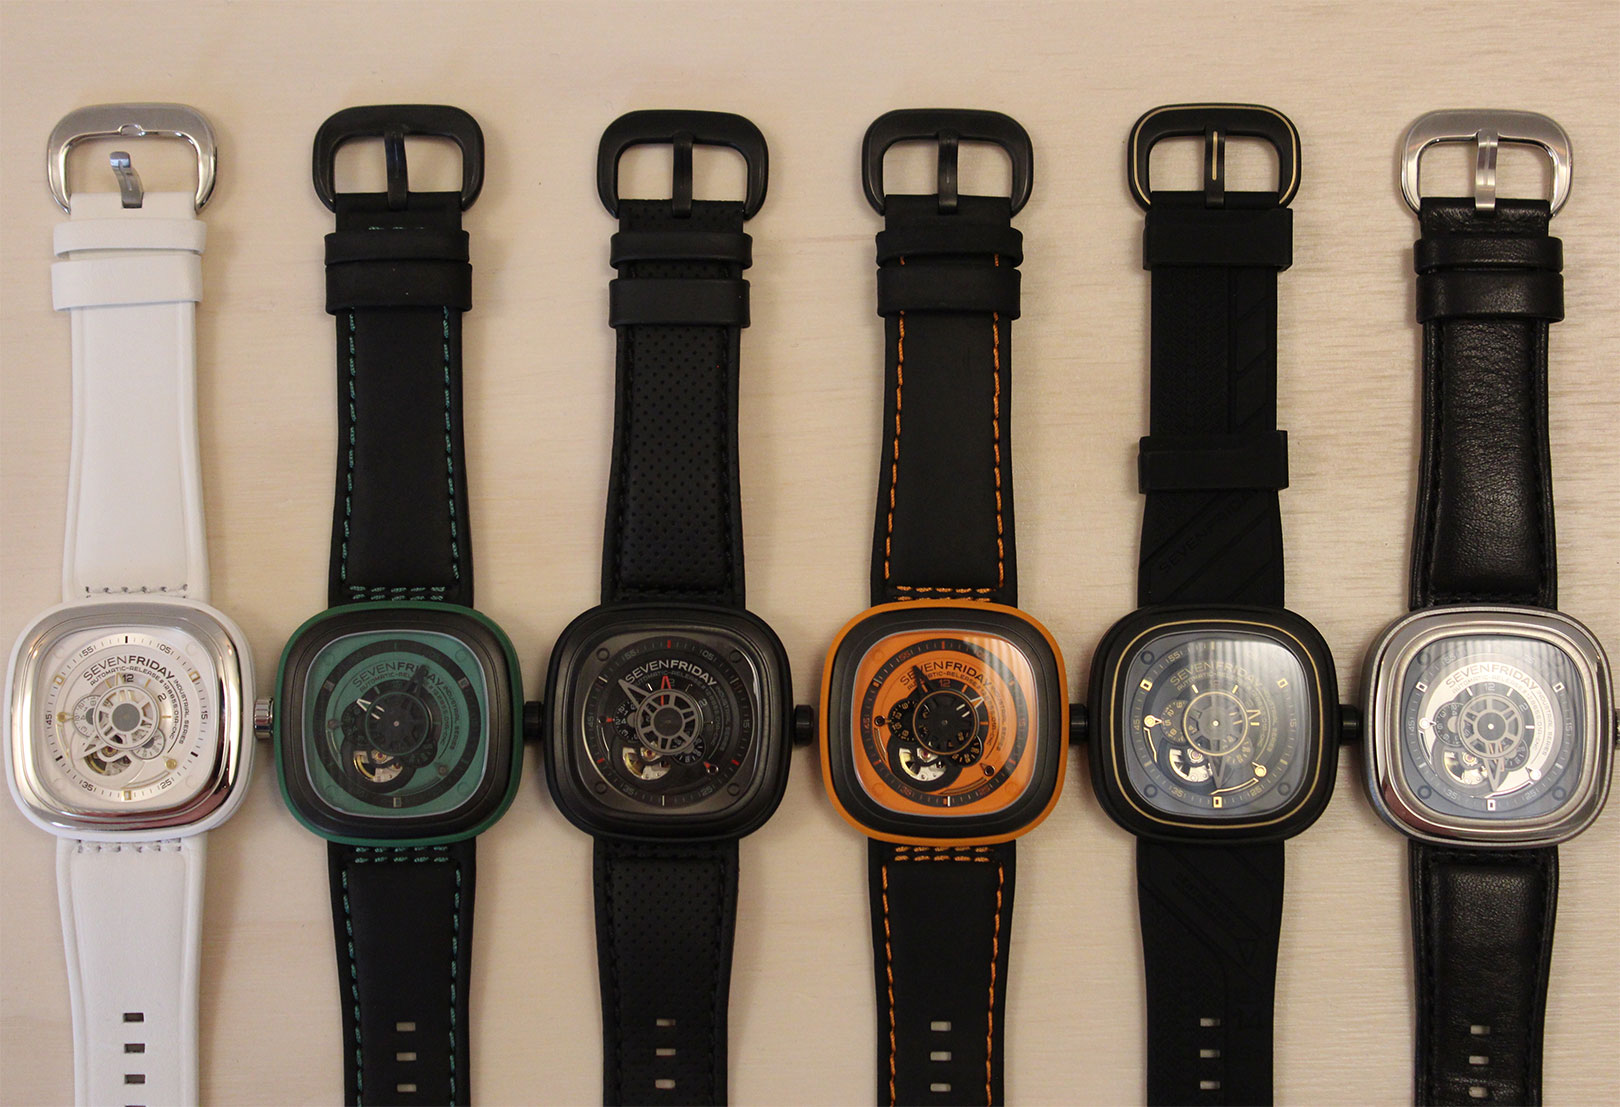 Review sevenfriday fun fad or future classic time and tide watches for Sevenfriday watches